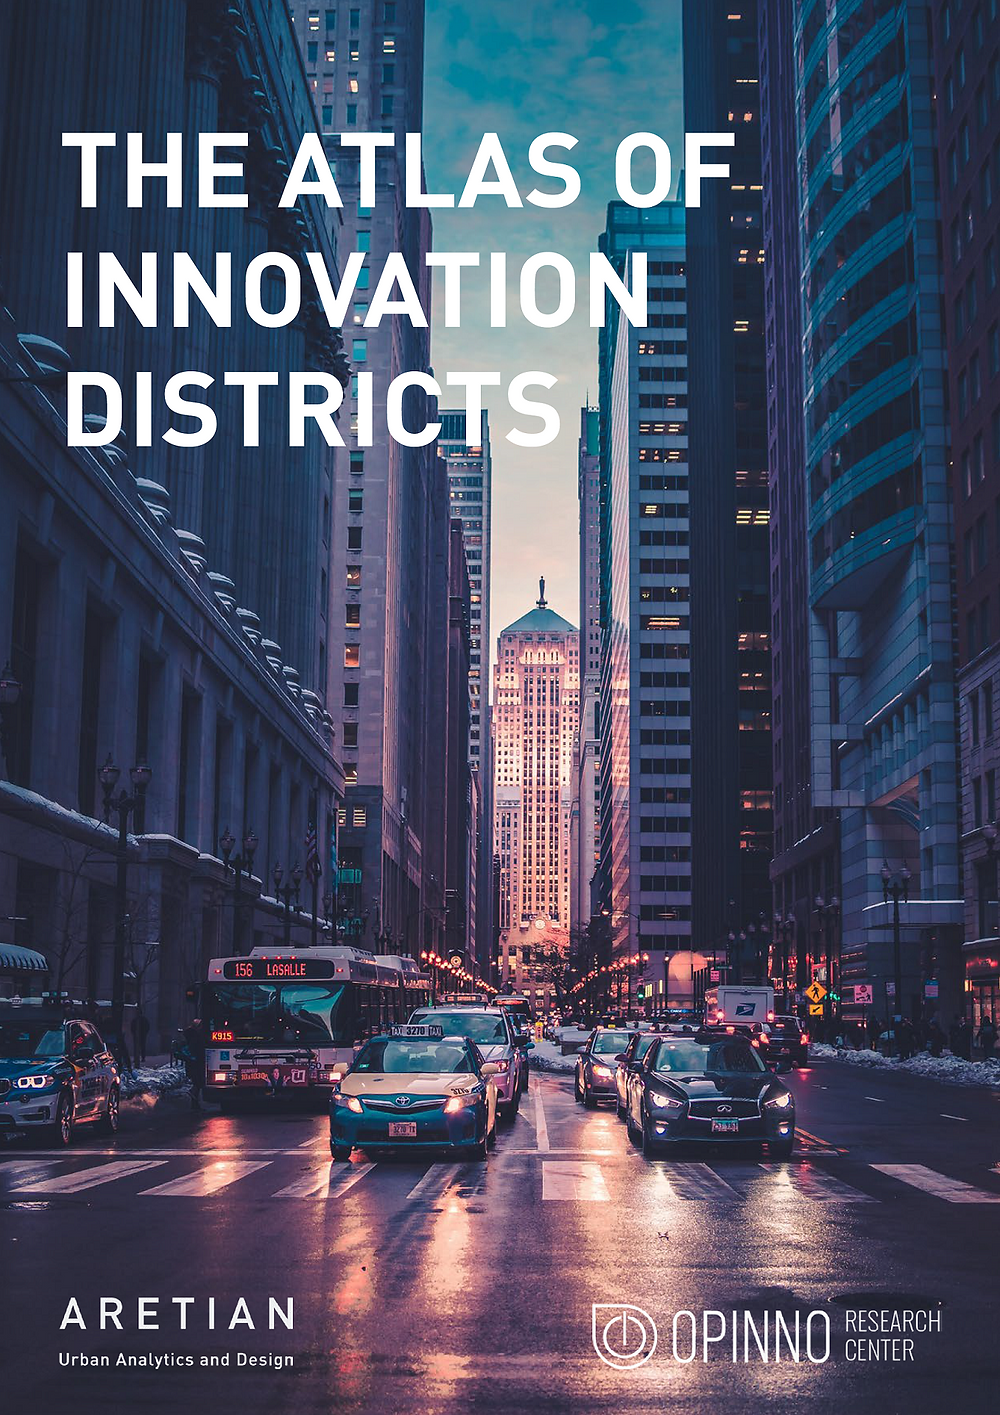 The Atlas of Innovation Districts, a revolutionary study by Aretian